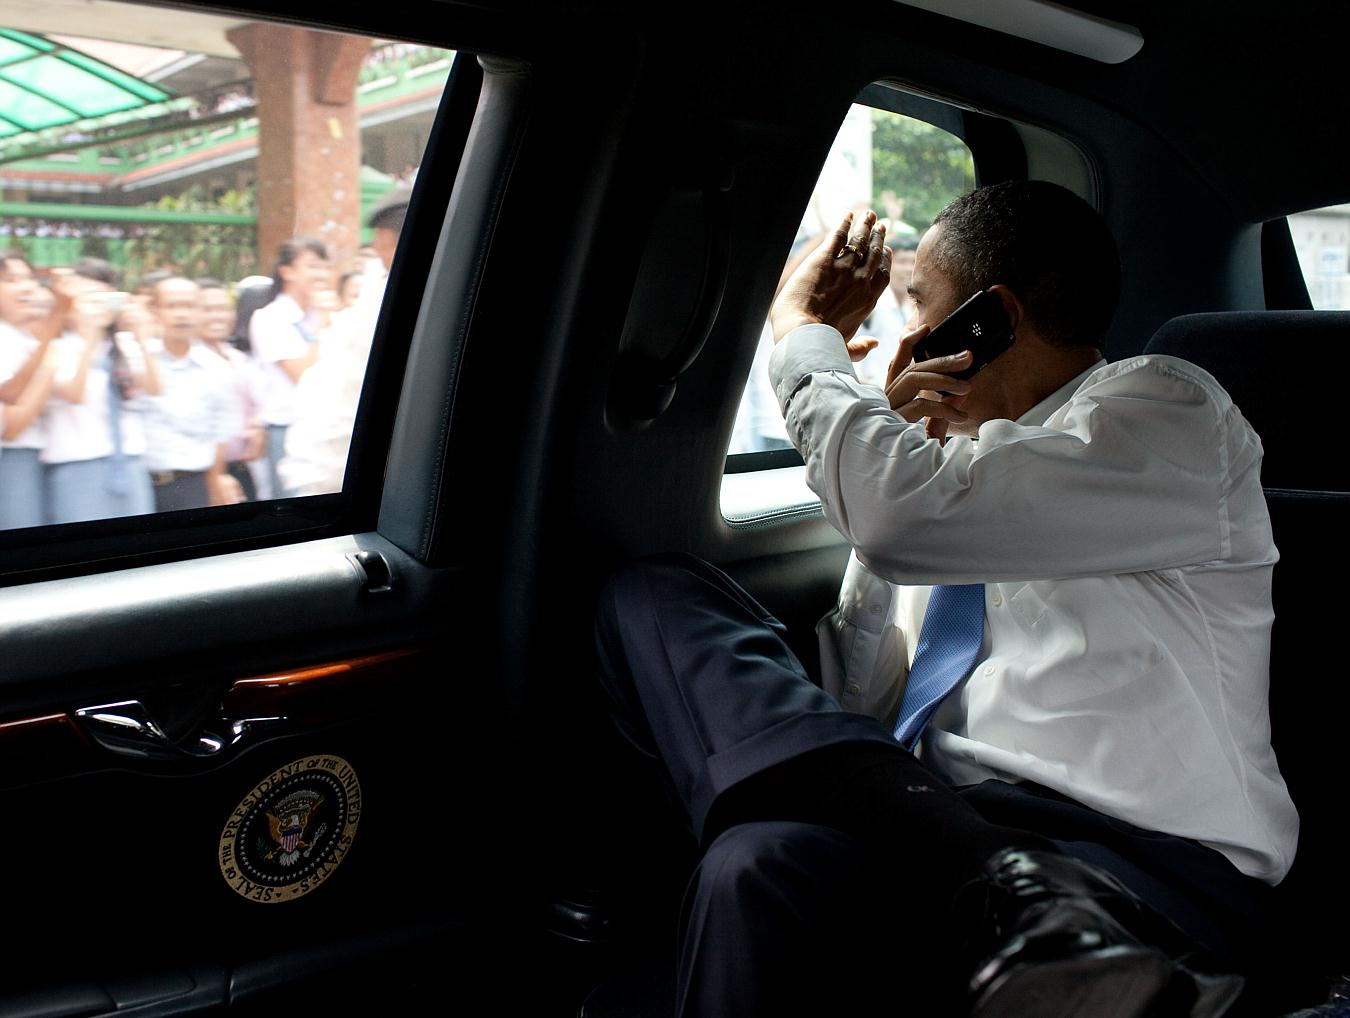 why obama can't use an iphone - tom's guide